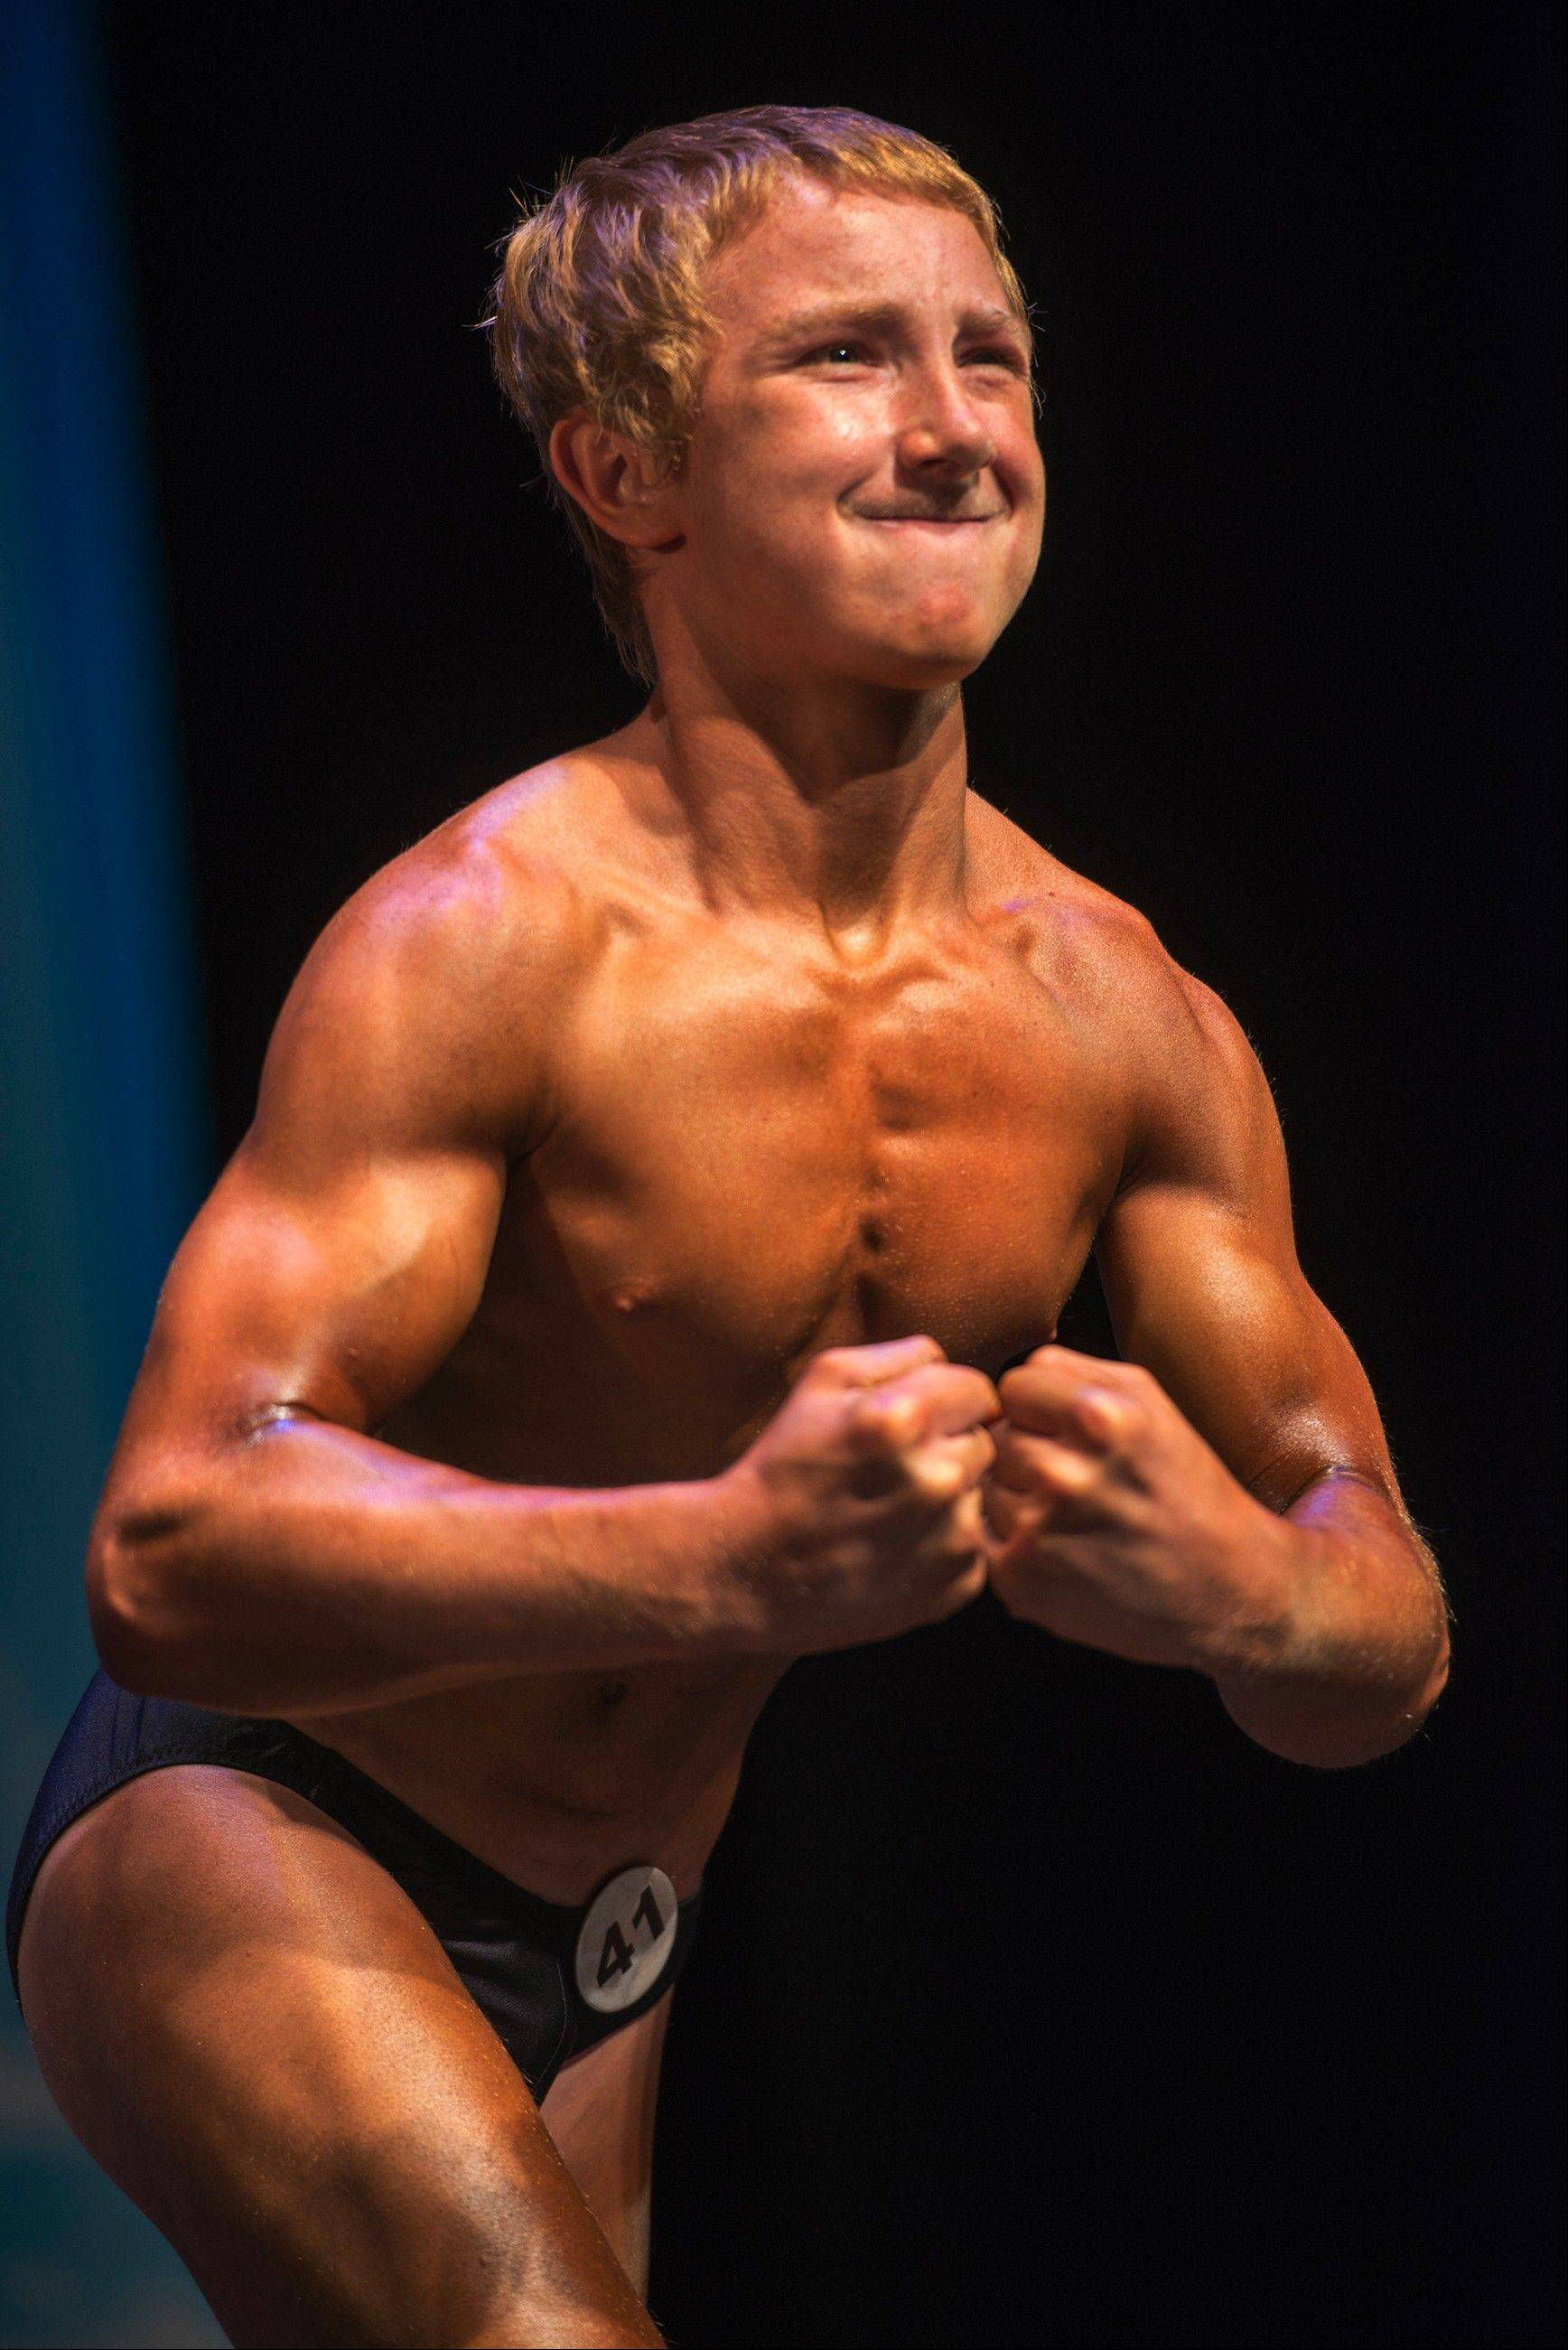 Jake Schellenschlager, 13 at the time, was the youngest competitor at the 2013 Musclemania Capitol Tournament of Champions last May 18 in Silver Spring, Md.